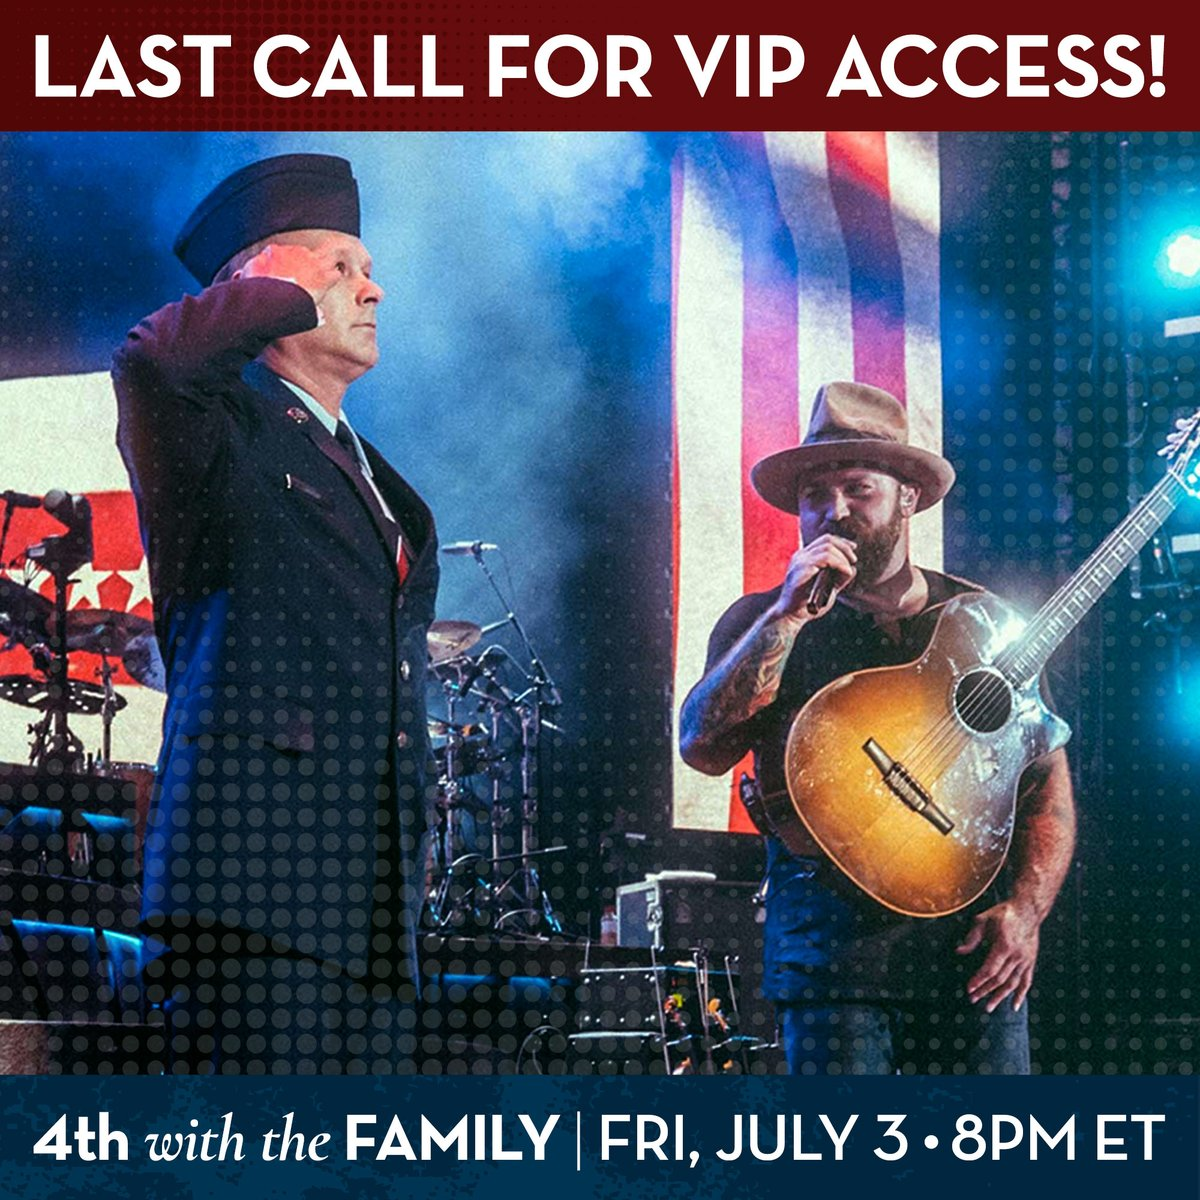 Last call! Tomorrow is the last day to get behind the scenes pre-show access with Zac AND your name recognized during our #4thwiththeFamily livestream! All gifts support Camp Southern Ground's veteran programs. Donate today https://t.co/k9bdLXkeSr  #warriorwellbeing @zacbrownband https://t.co/fG8xkwvVn3